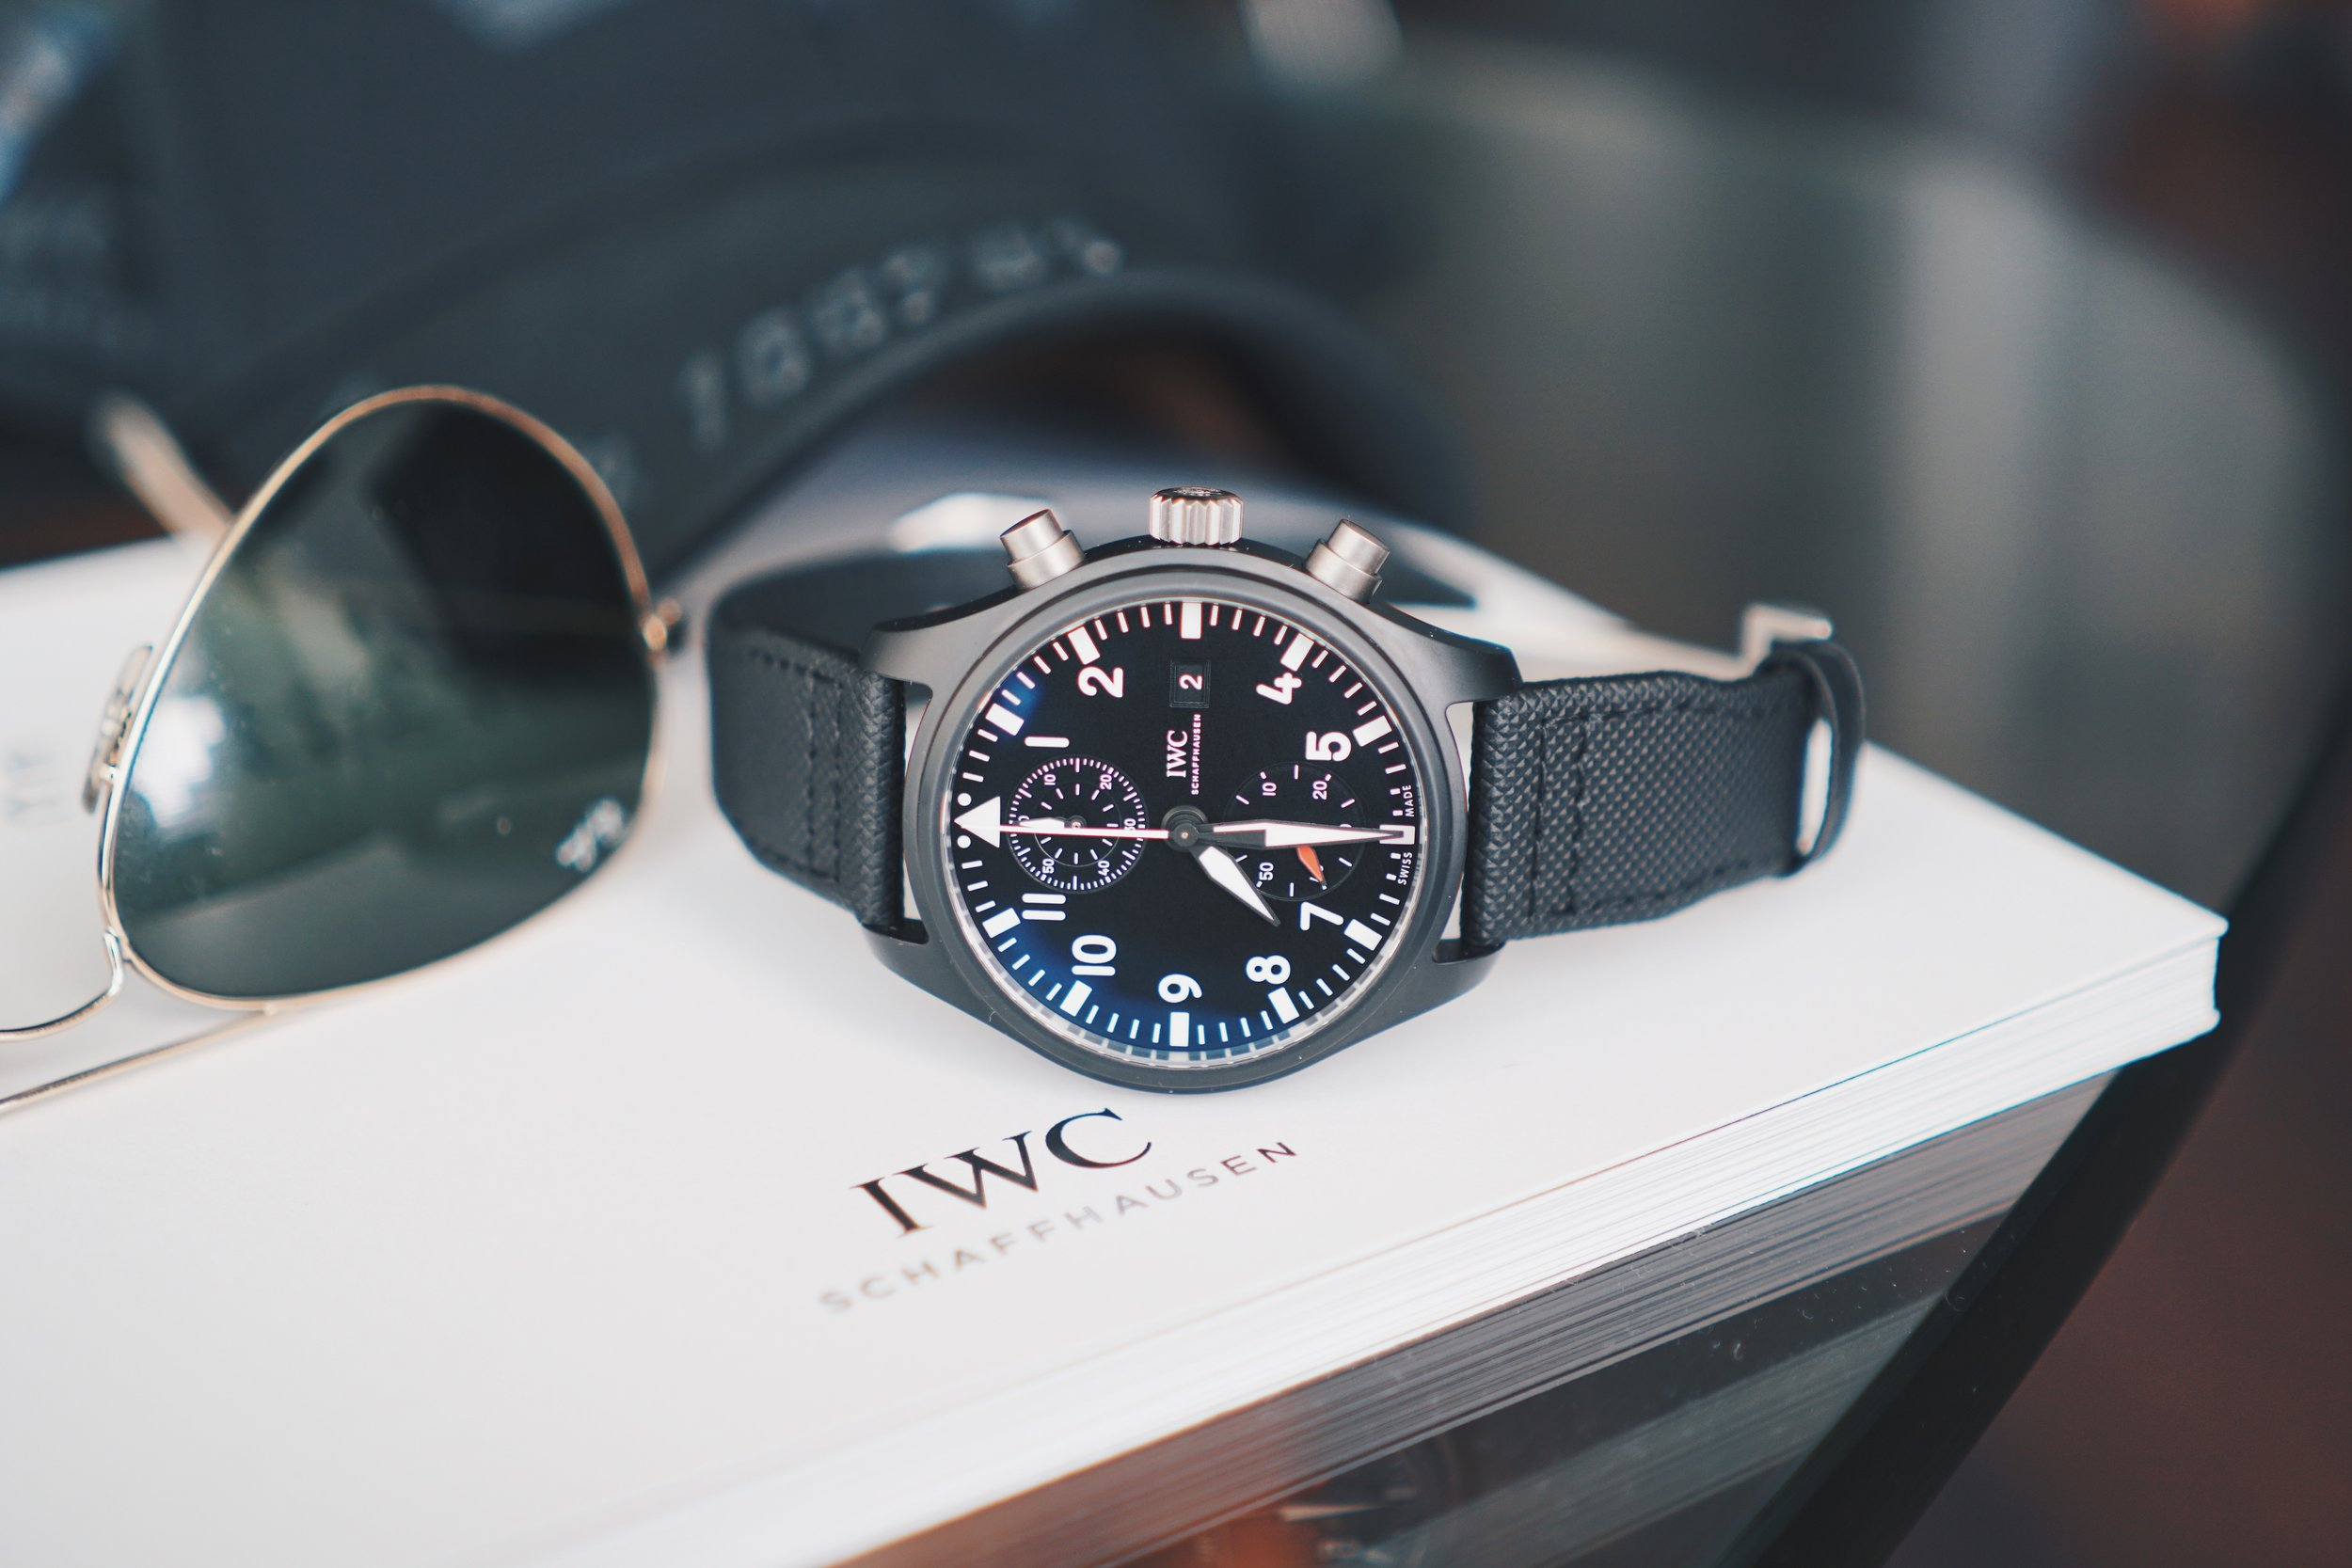 IWC Pilot's Watch Chrono Top Gun joins the squadron.